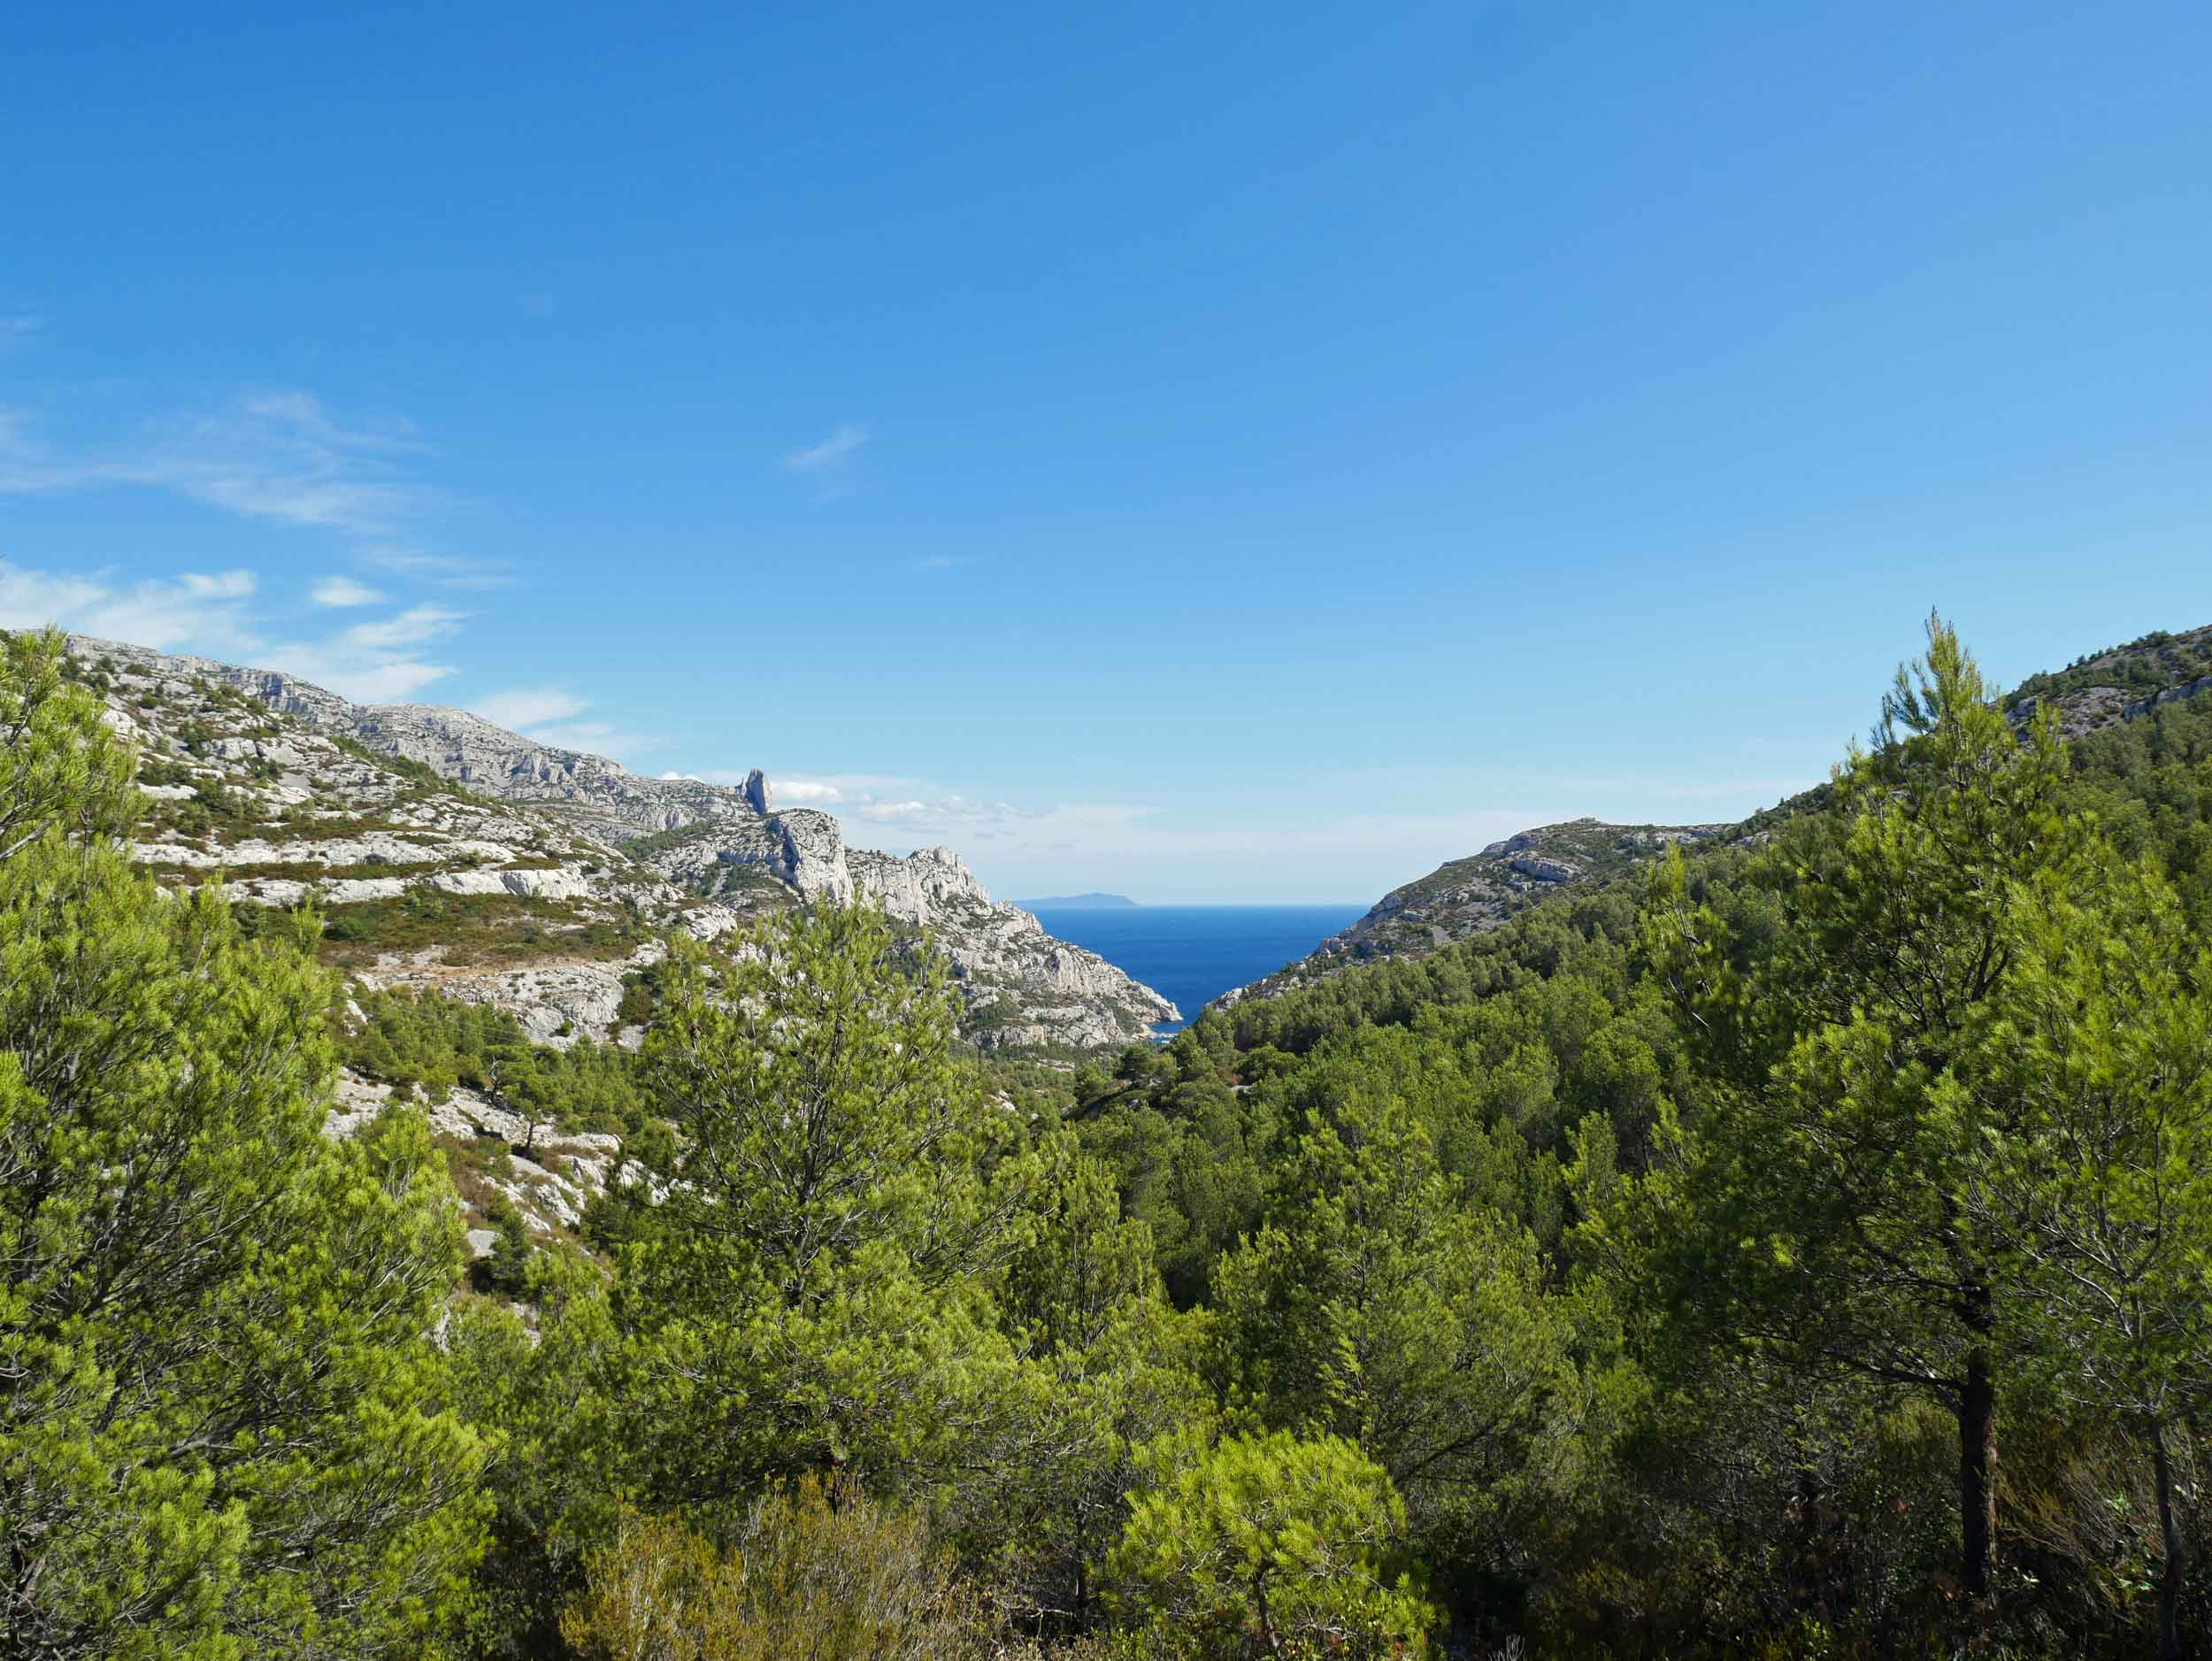 The Calanques National Park, established in 2012, is one of the newest parklands in France (Sept 10).